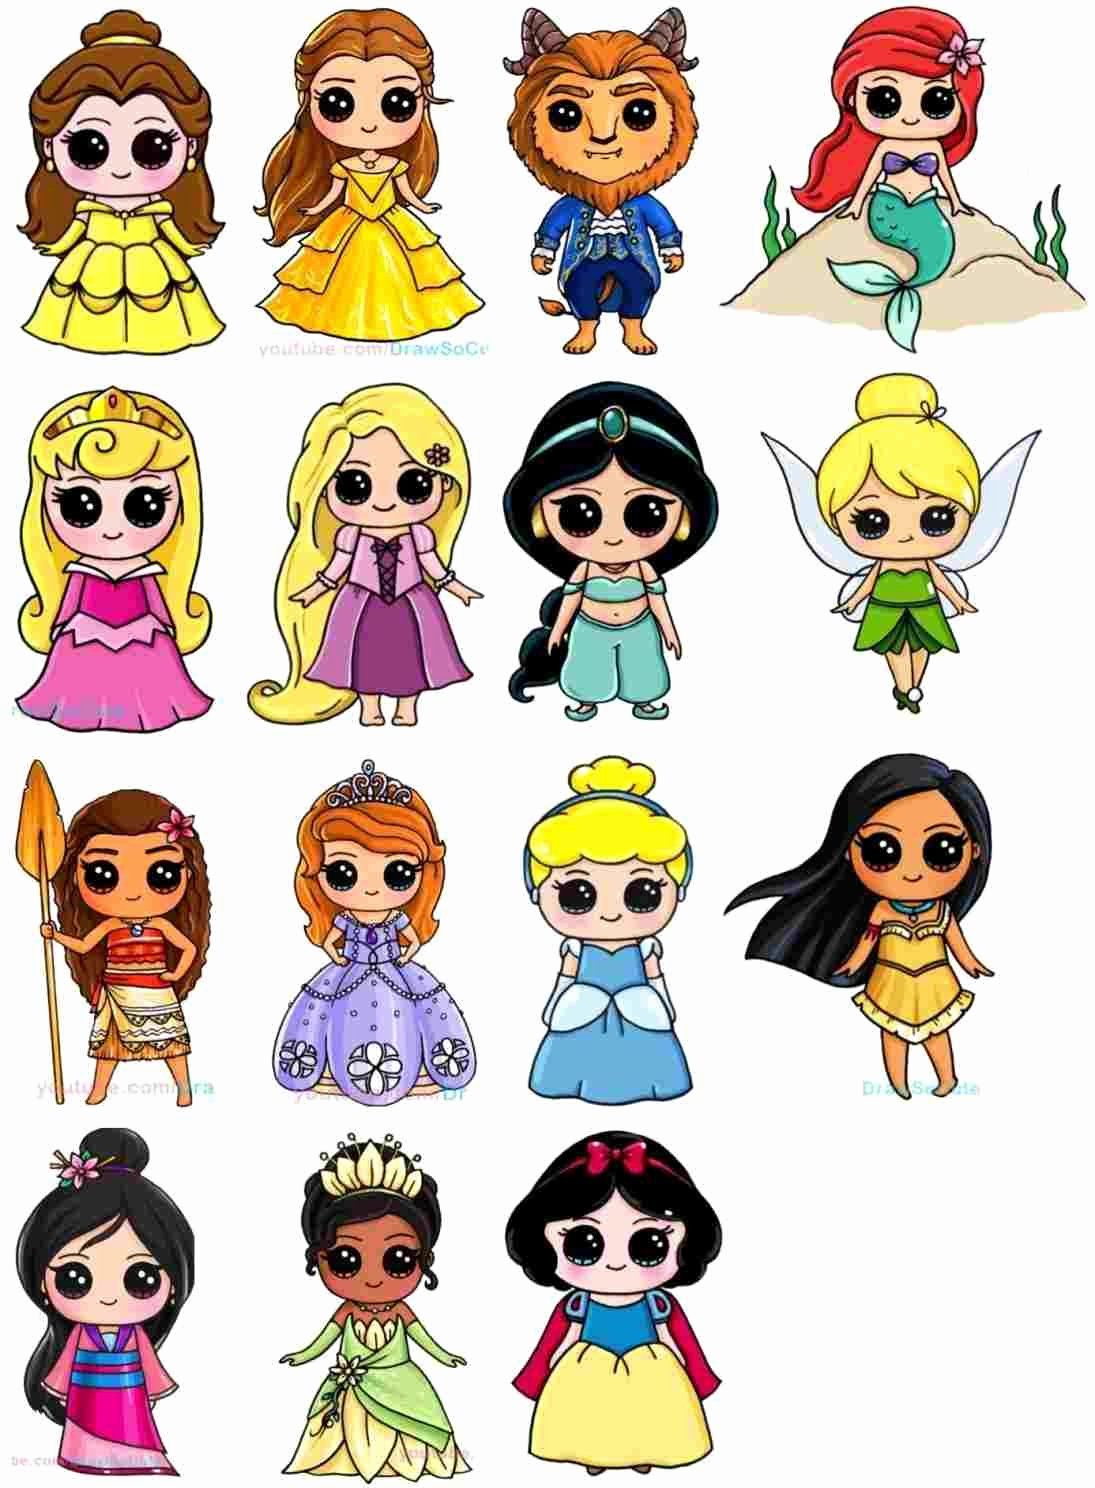 Pin By Tori Rowe On Drawings Disney Character Drawings Disney Princess Drawings Kawaii Disney